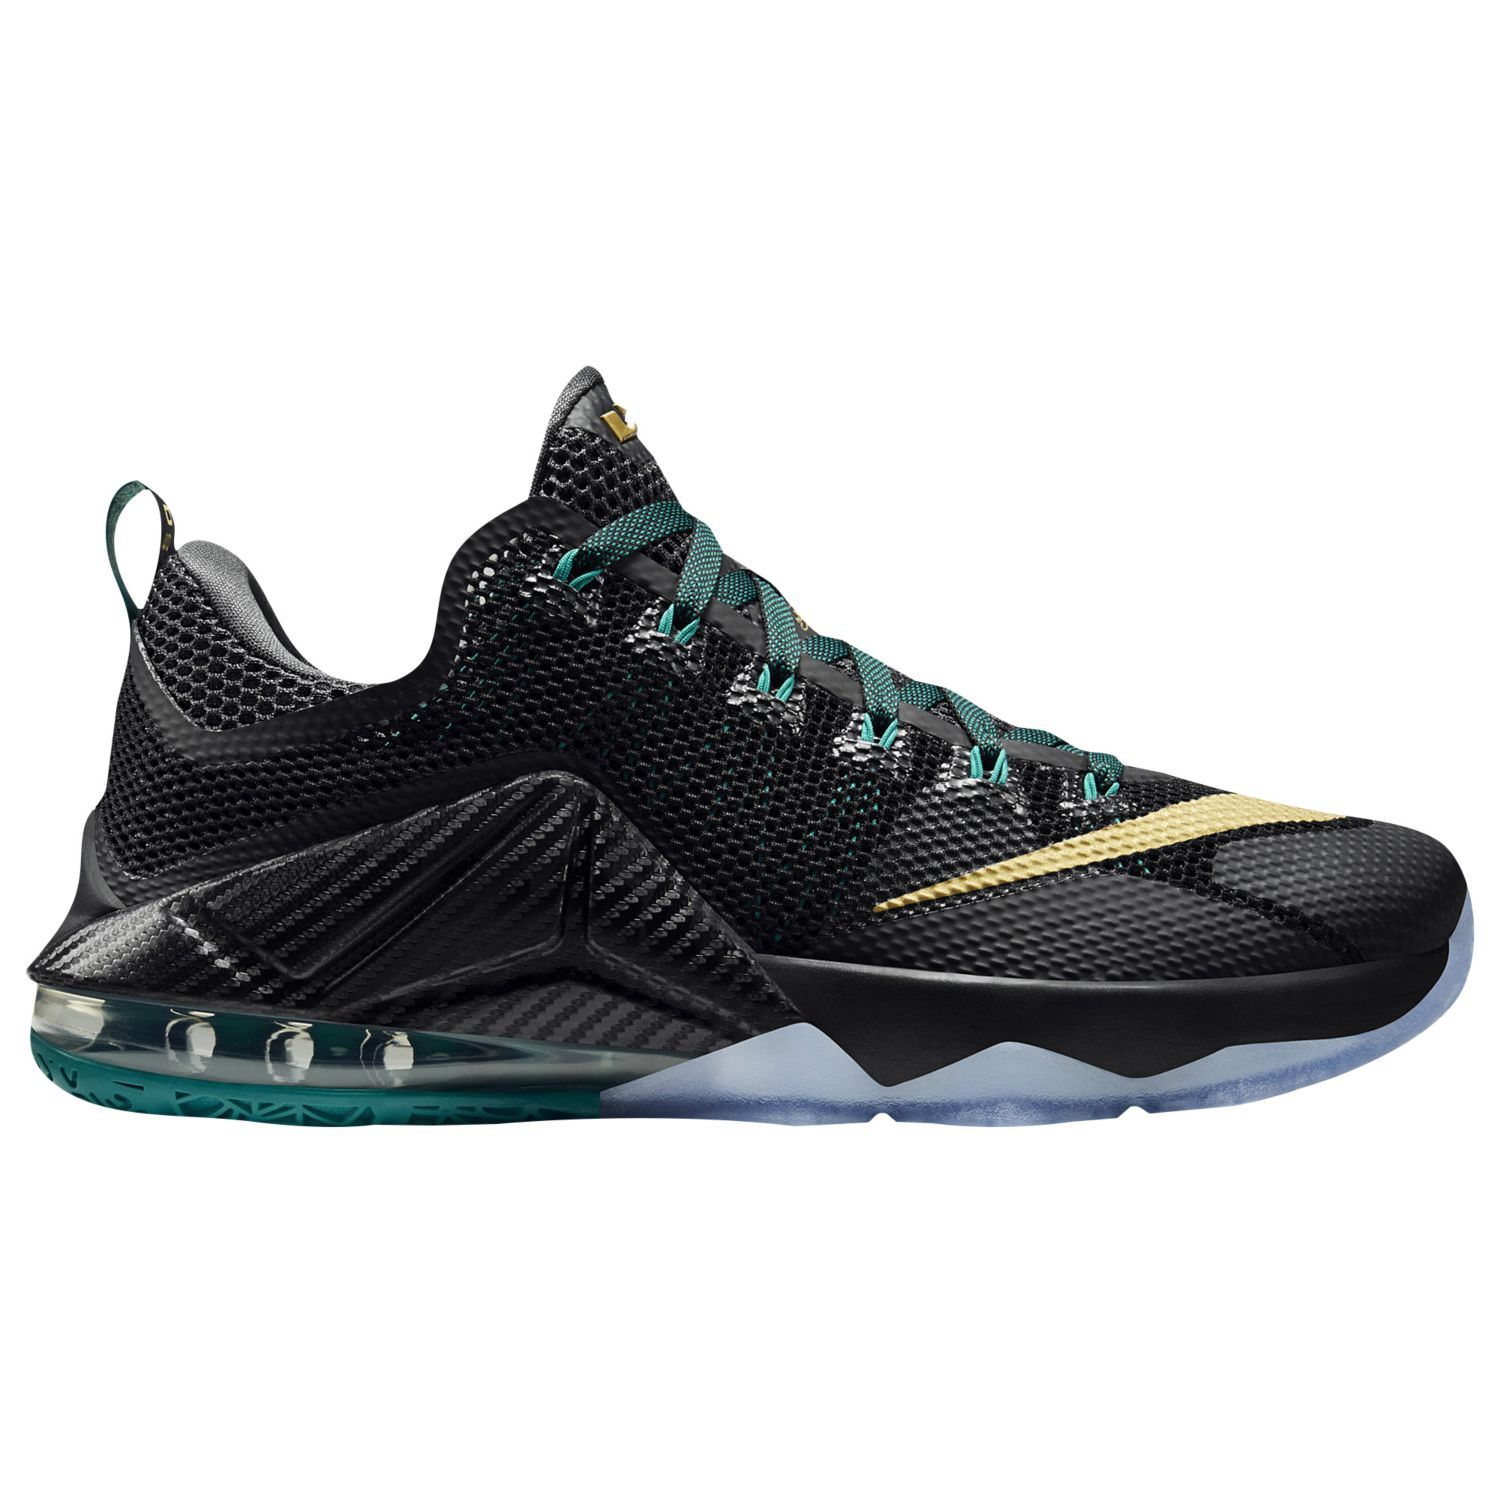 info for bd344 8e273 ... where to buy nike low lebron 12 low nike hombres basketball zapatos  james lebron dd7dea fbb44